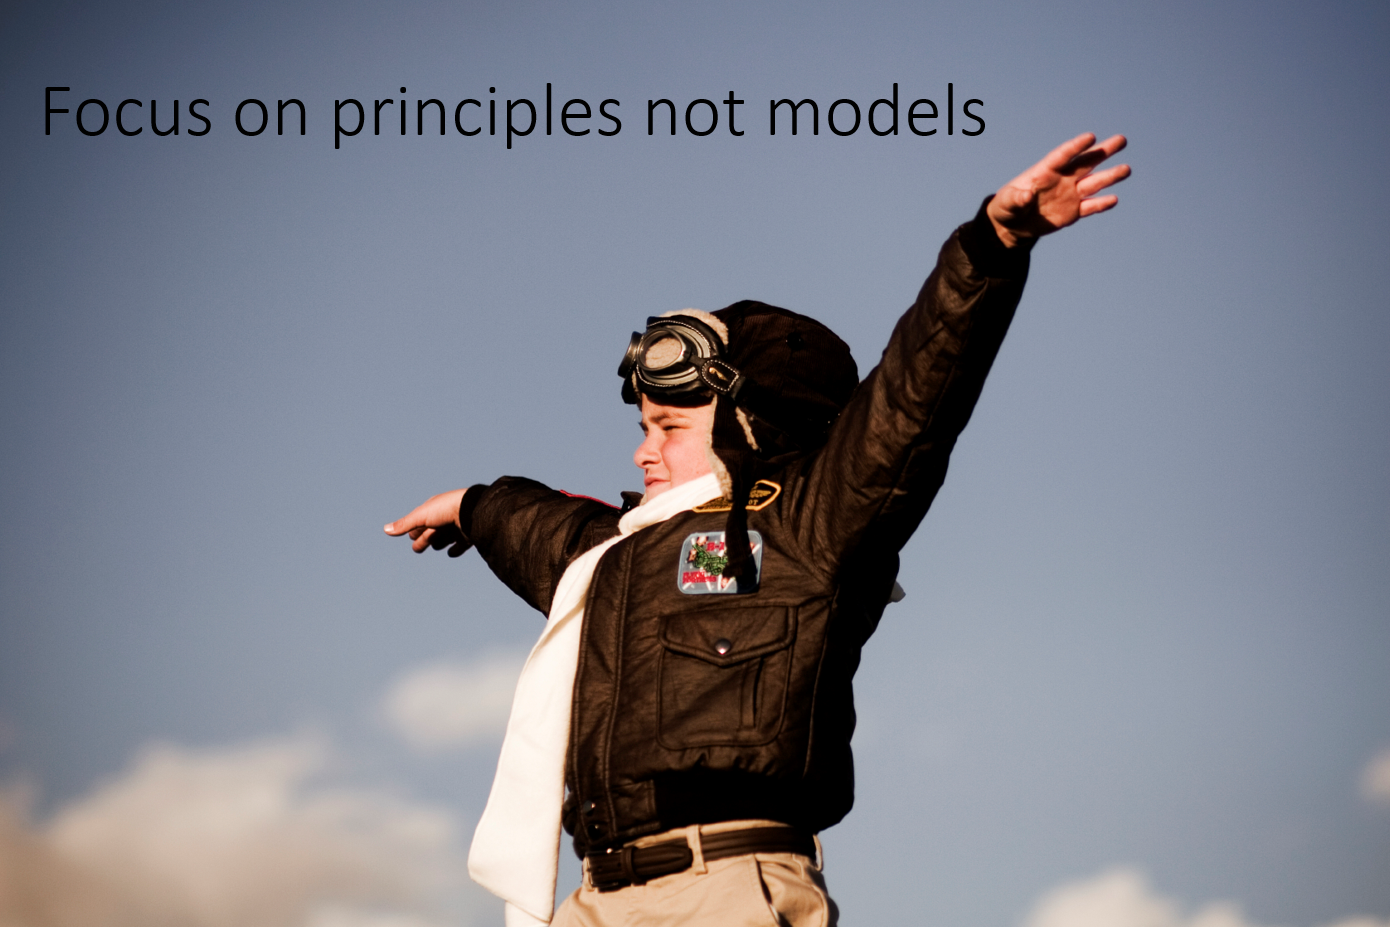 BYOD principles not models